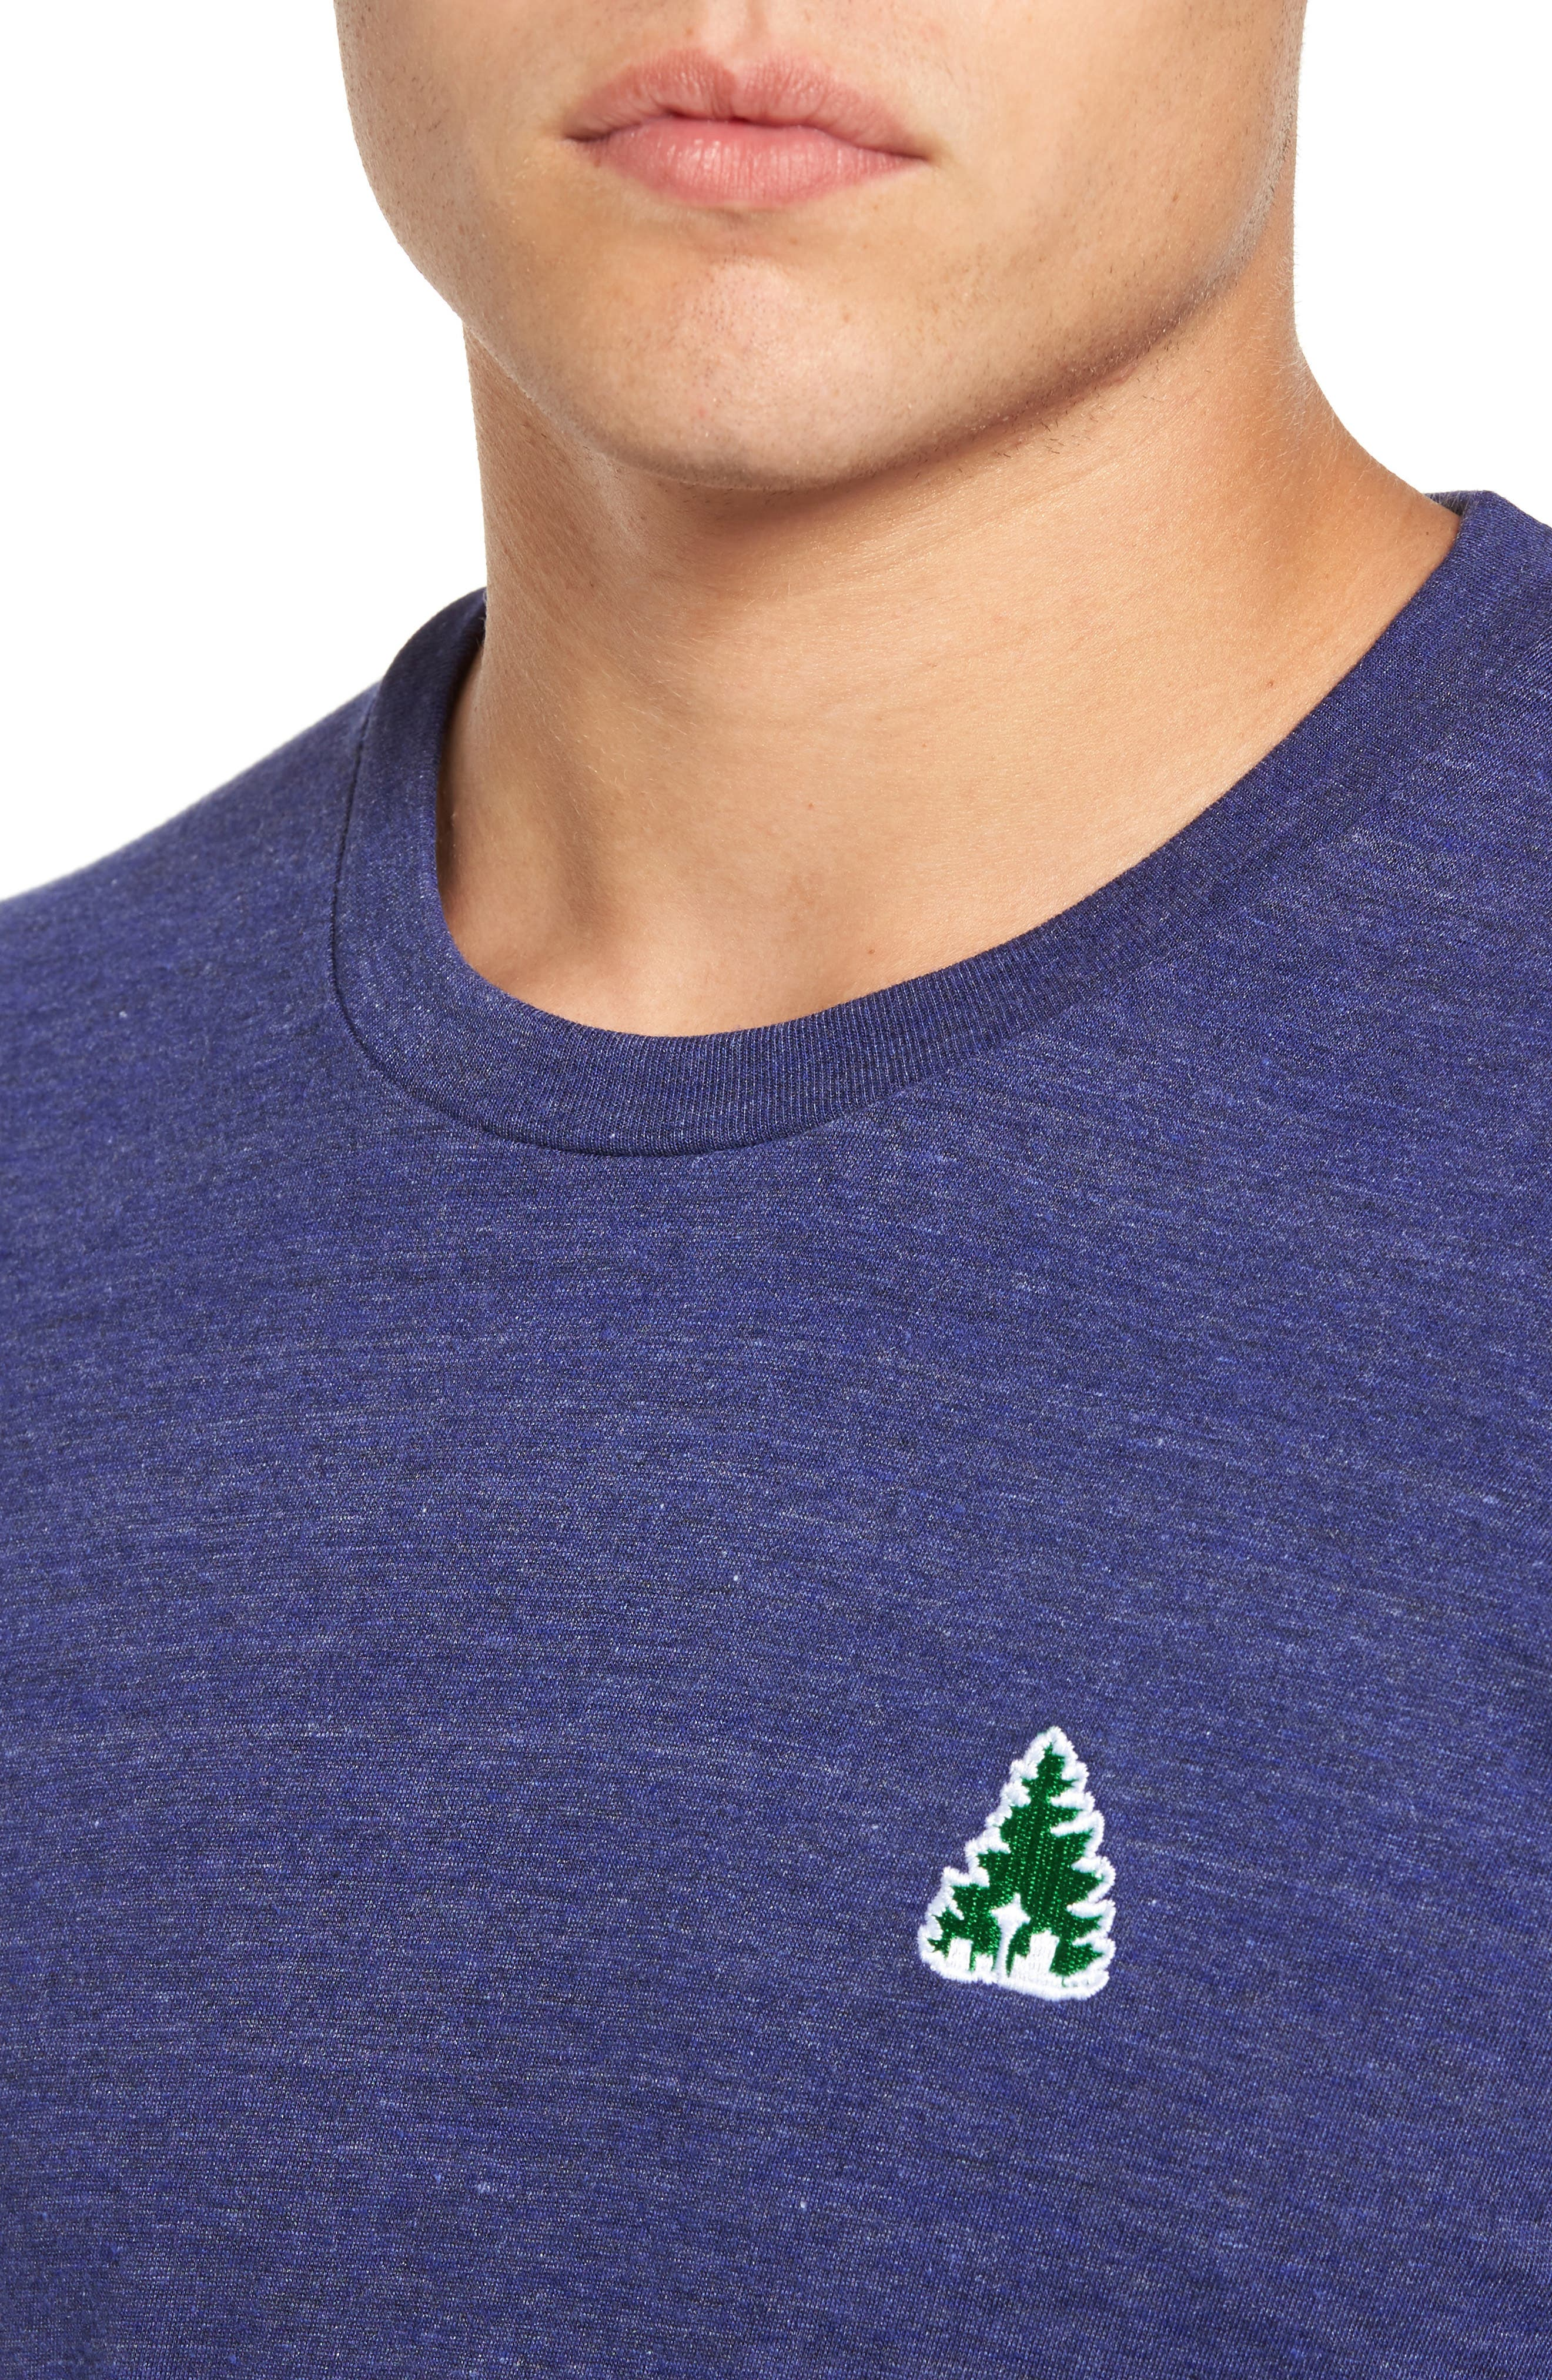 Johnny Tree Embroidered T-Shirt,                             Alternate thumbnail 4, color,                             408